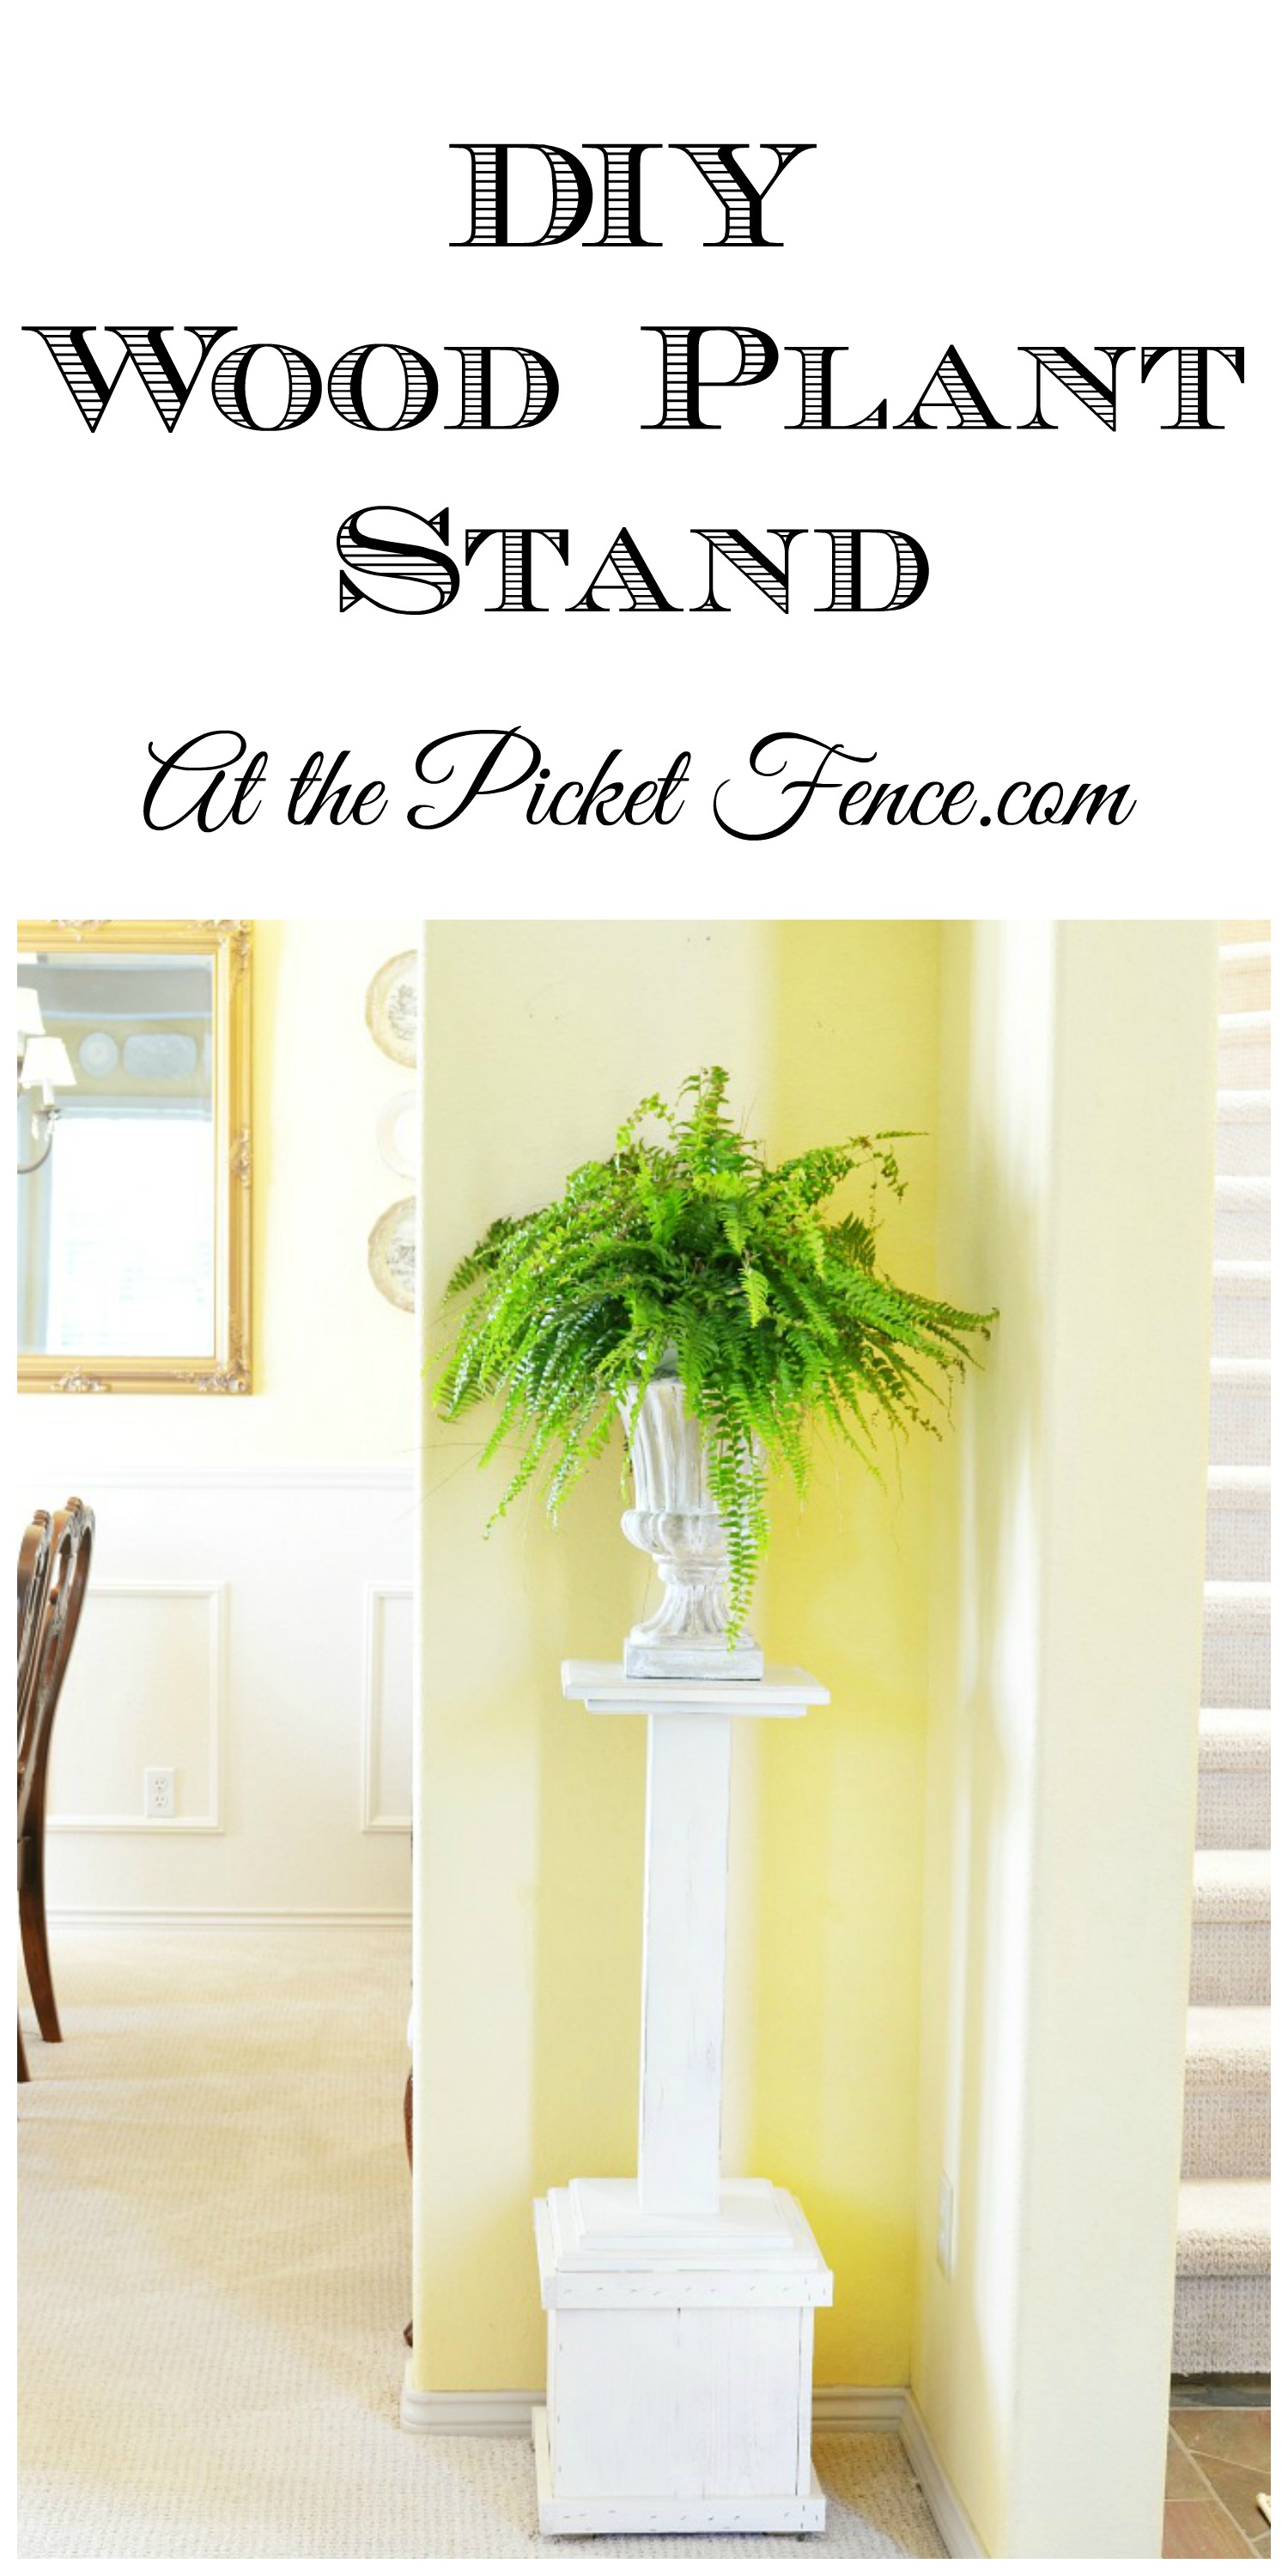 Diy wood plant stand at the picket fence diy wood planter box turned plant stand from at the picket fence baanklon Image collections